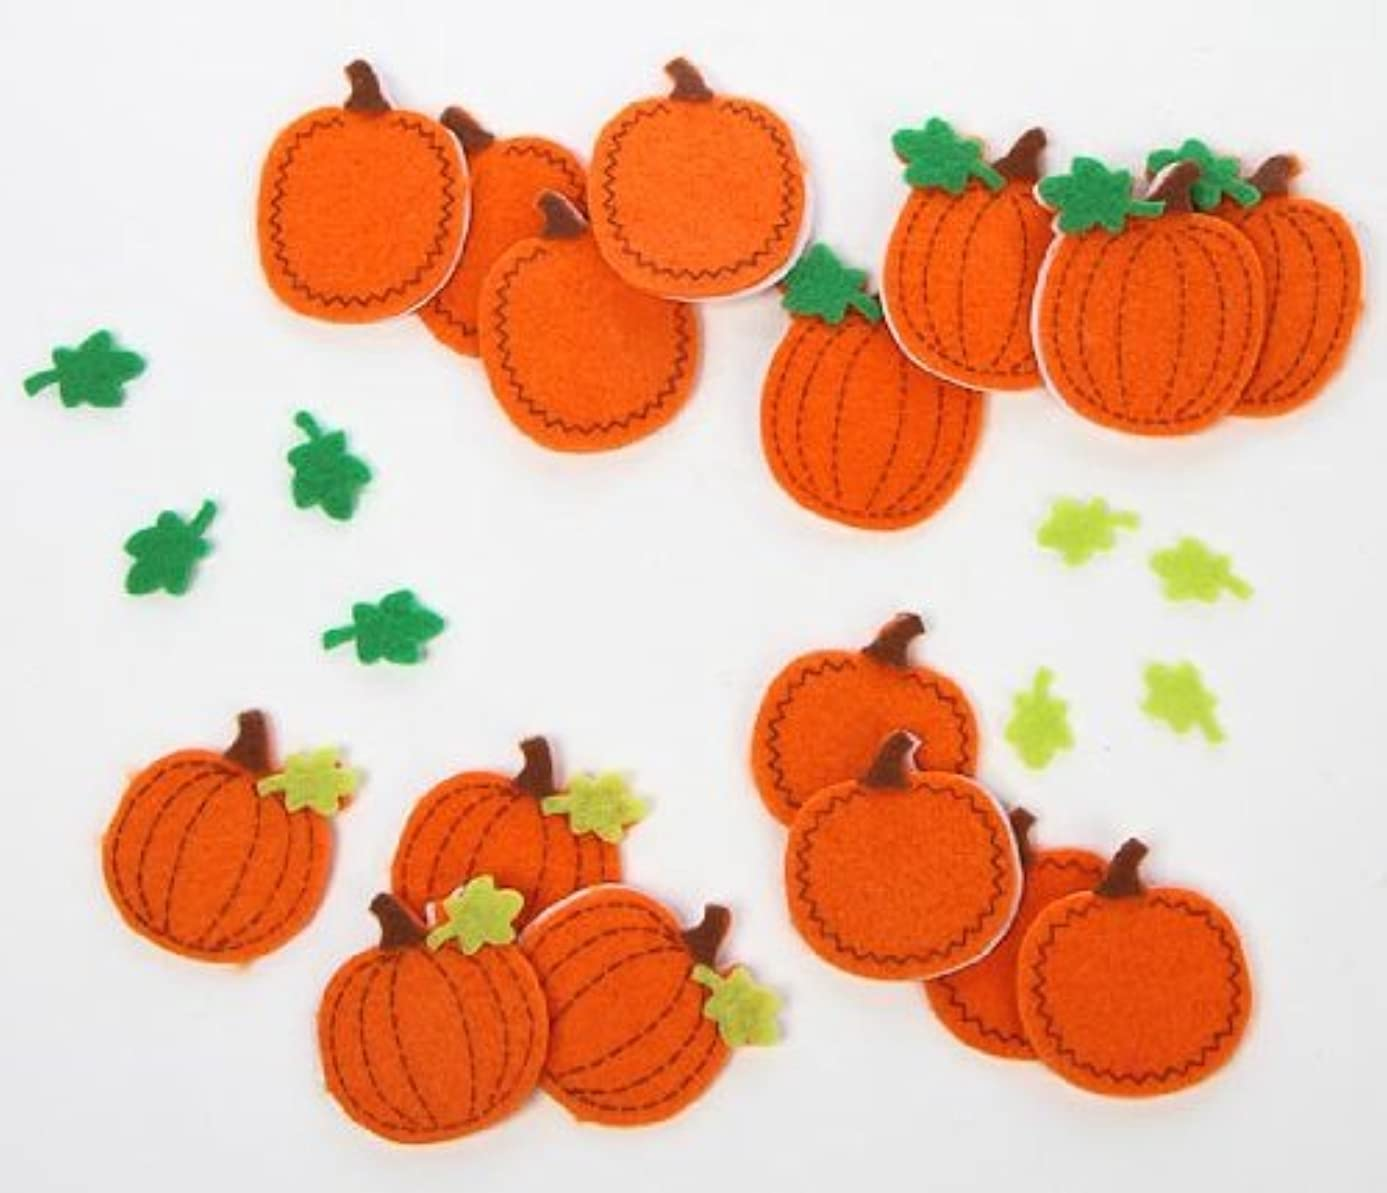 Fun Self Adhesive Dimensional Felt Falling Leaves and Pumpkins Stickers for Crafting and Embellishing- Package of 72